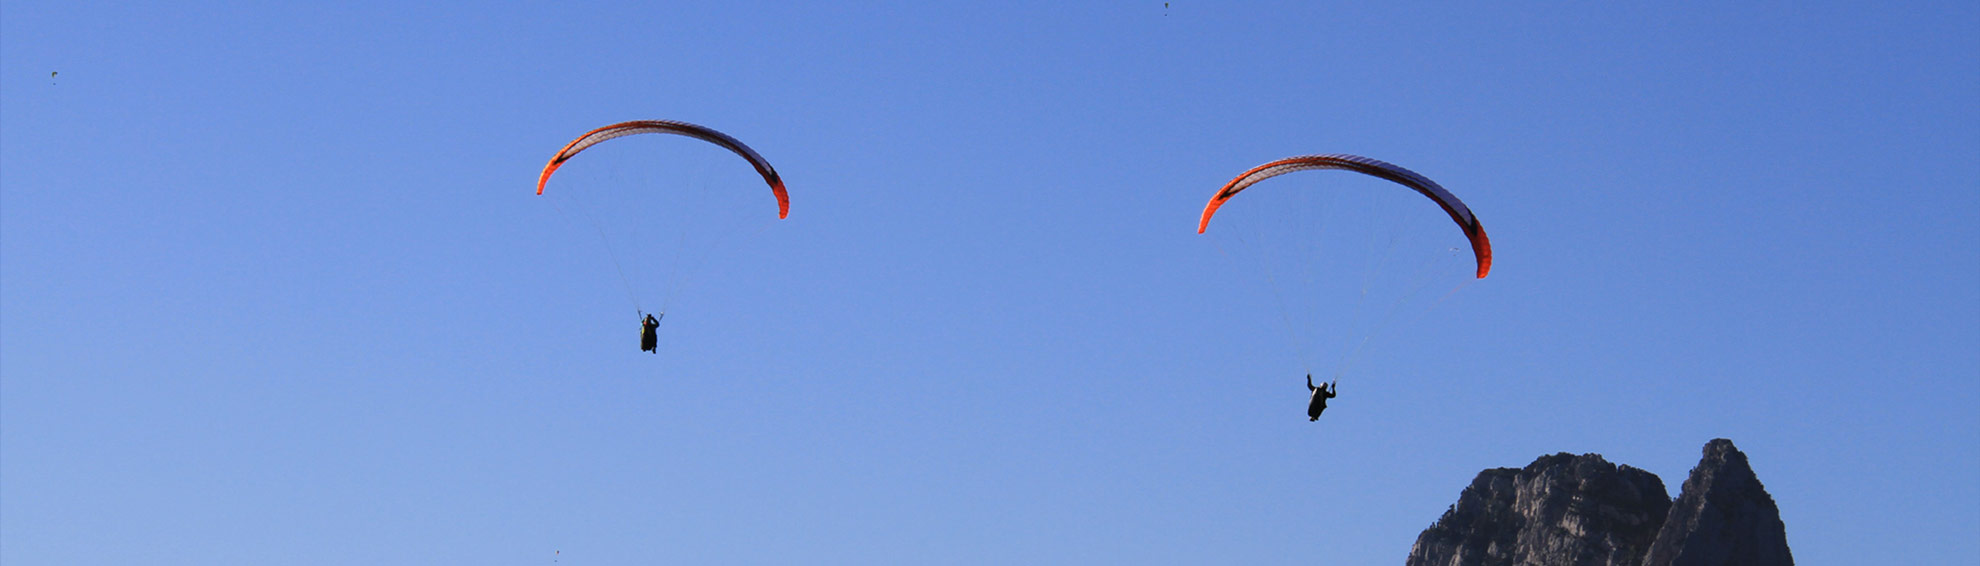 Stage parapente thermique Annecy